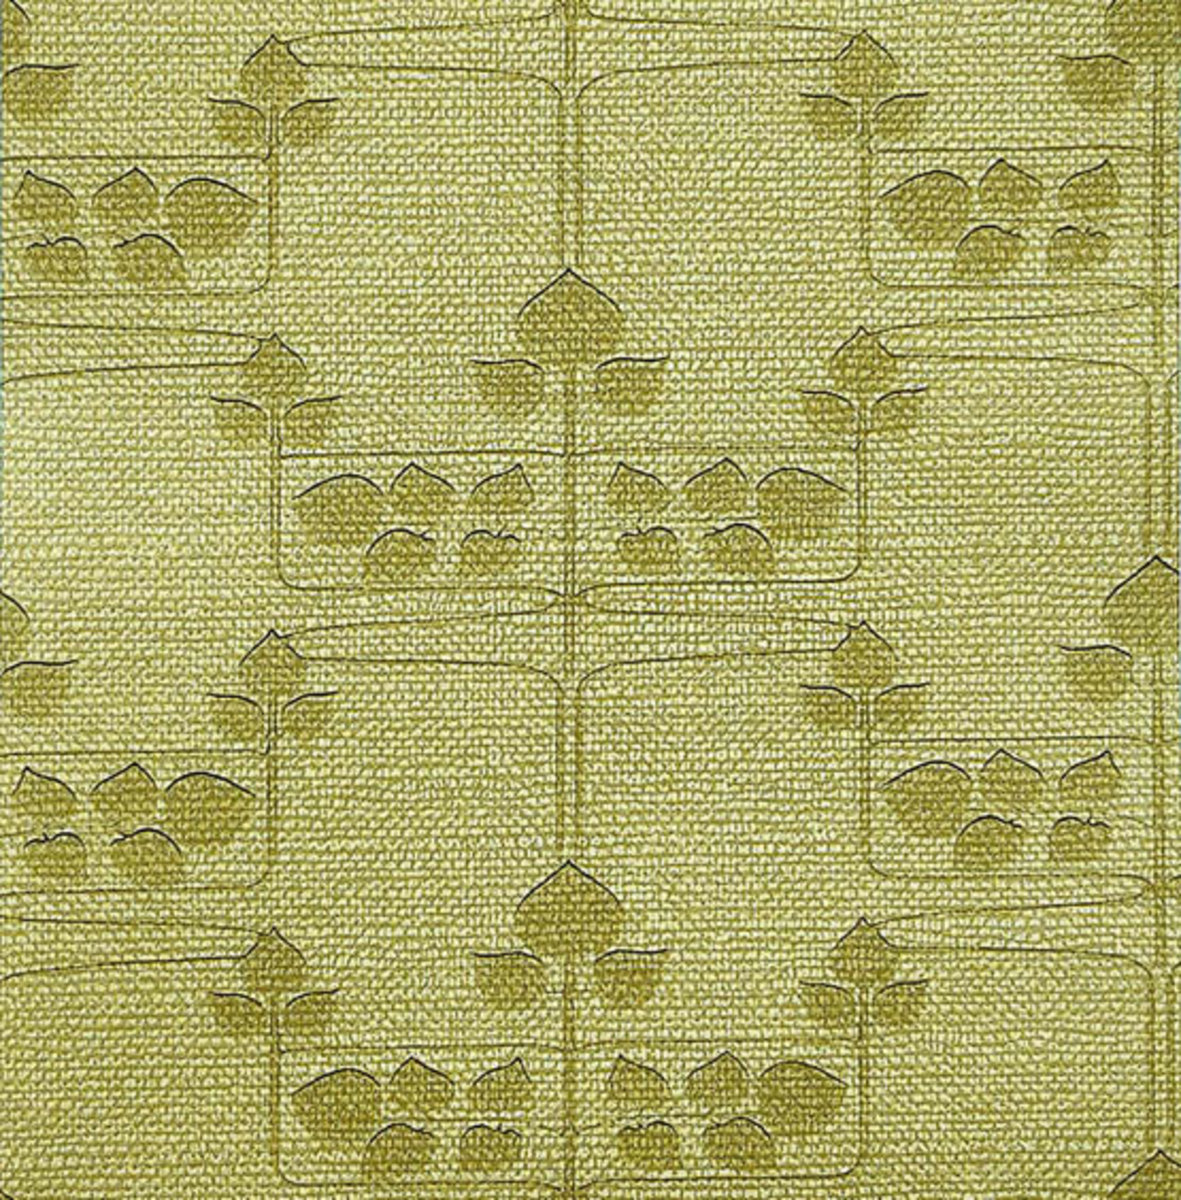 'Stencil Burlap' is a patterned fabric from Historic Style.